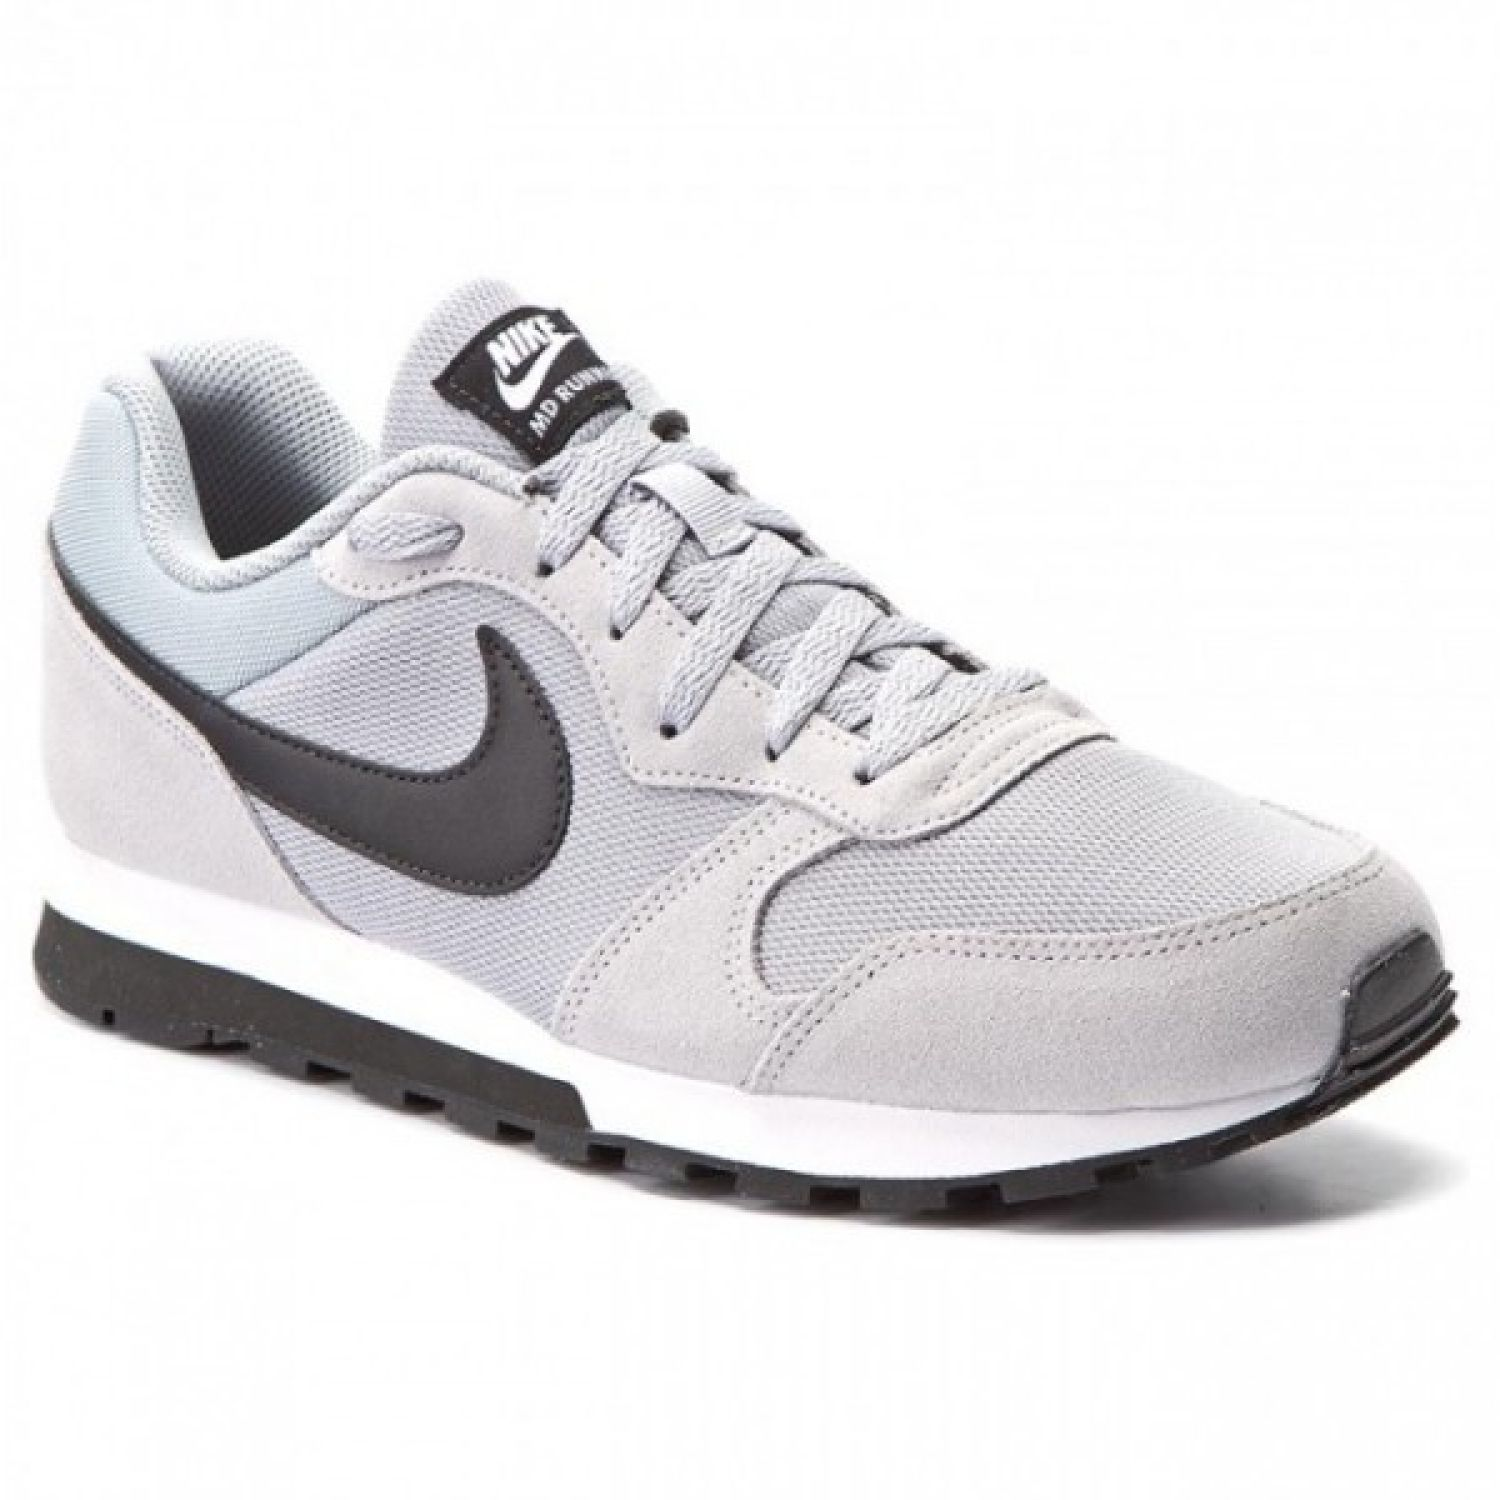 Nike ZAPATILLA NK 749794-001 Gris Walking